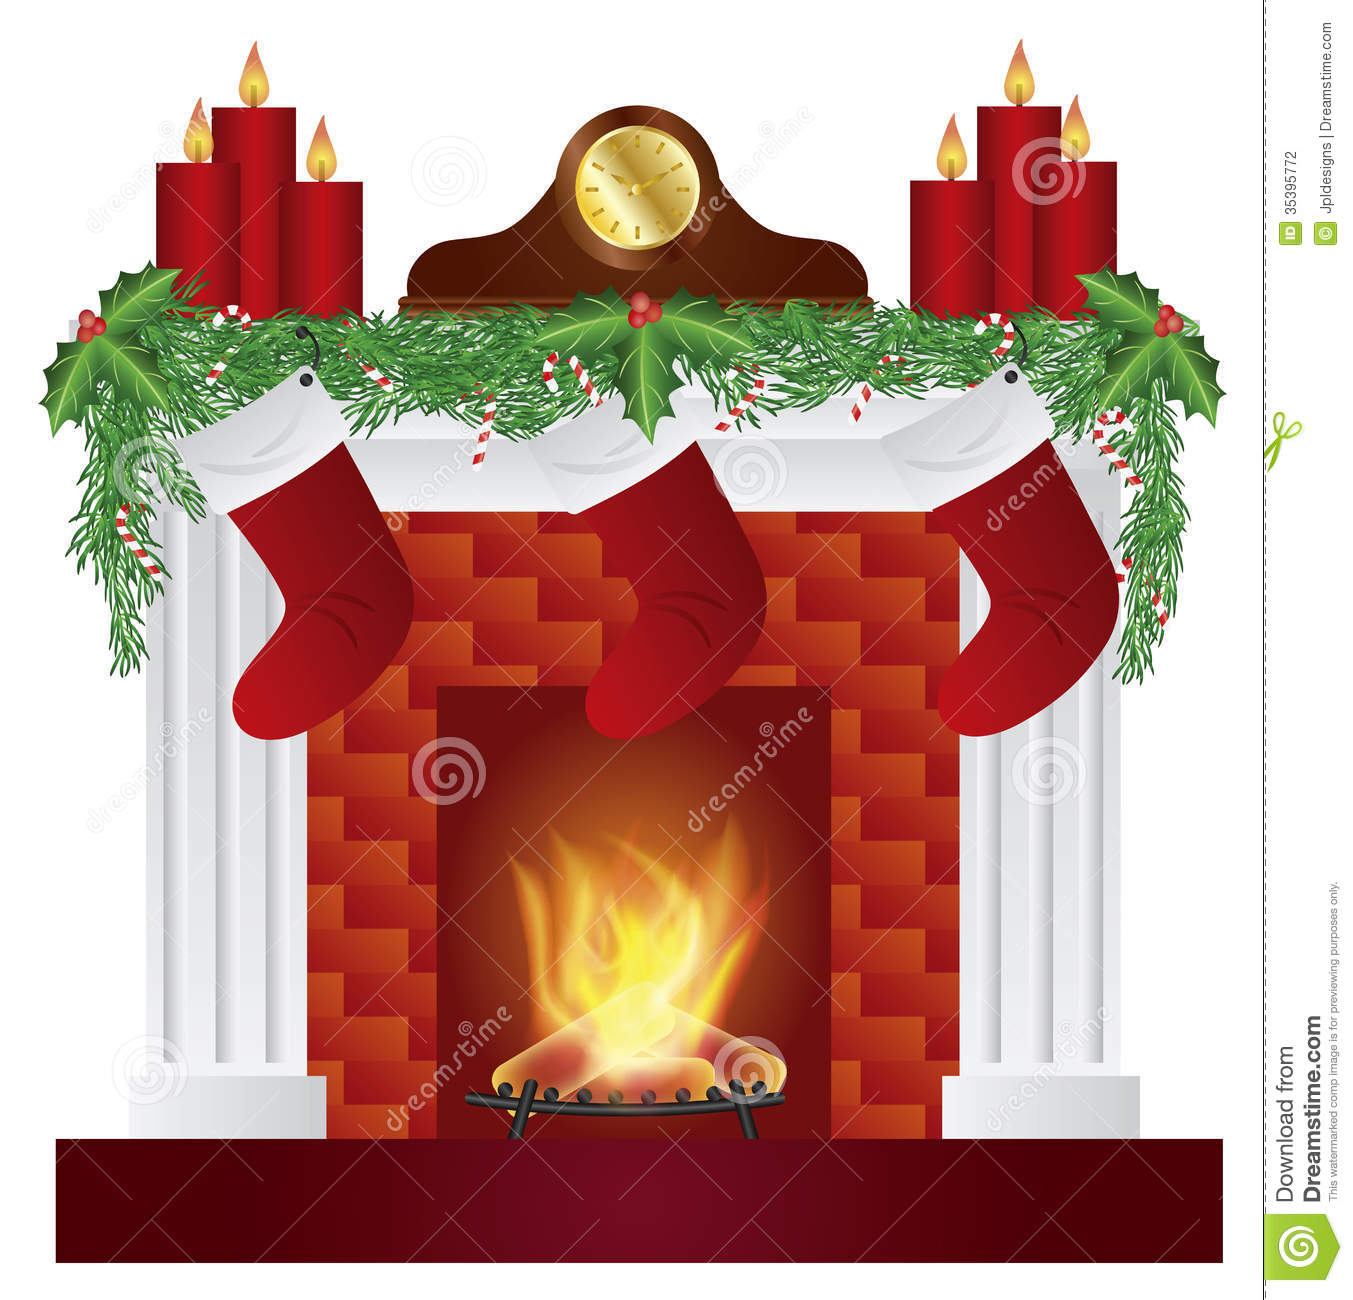 Christmas Fireplace Scene Clipart.Fireplace With Christmas Decoration Illustration Stock